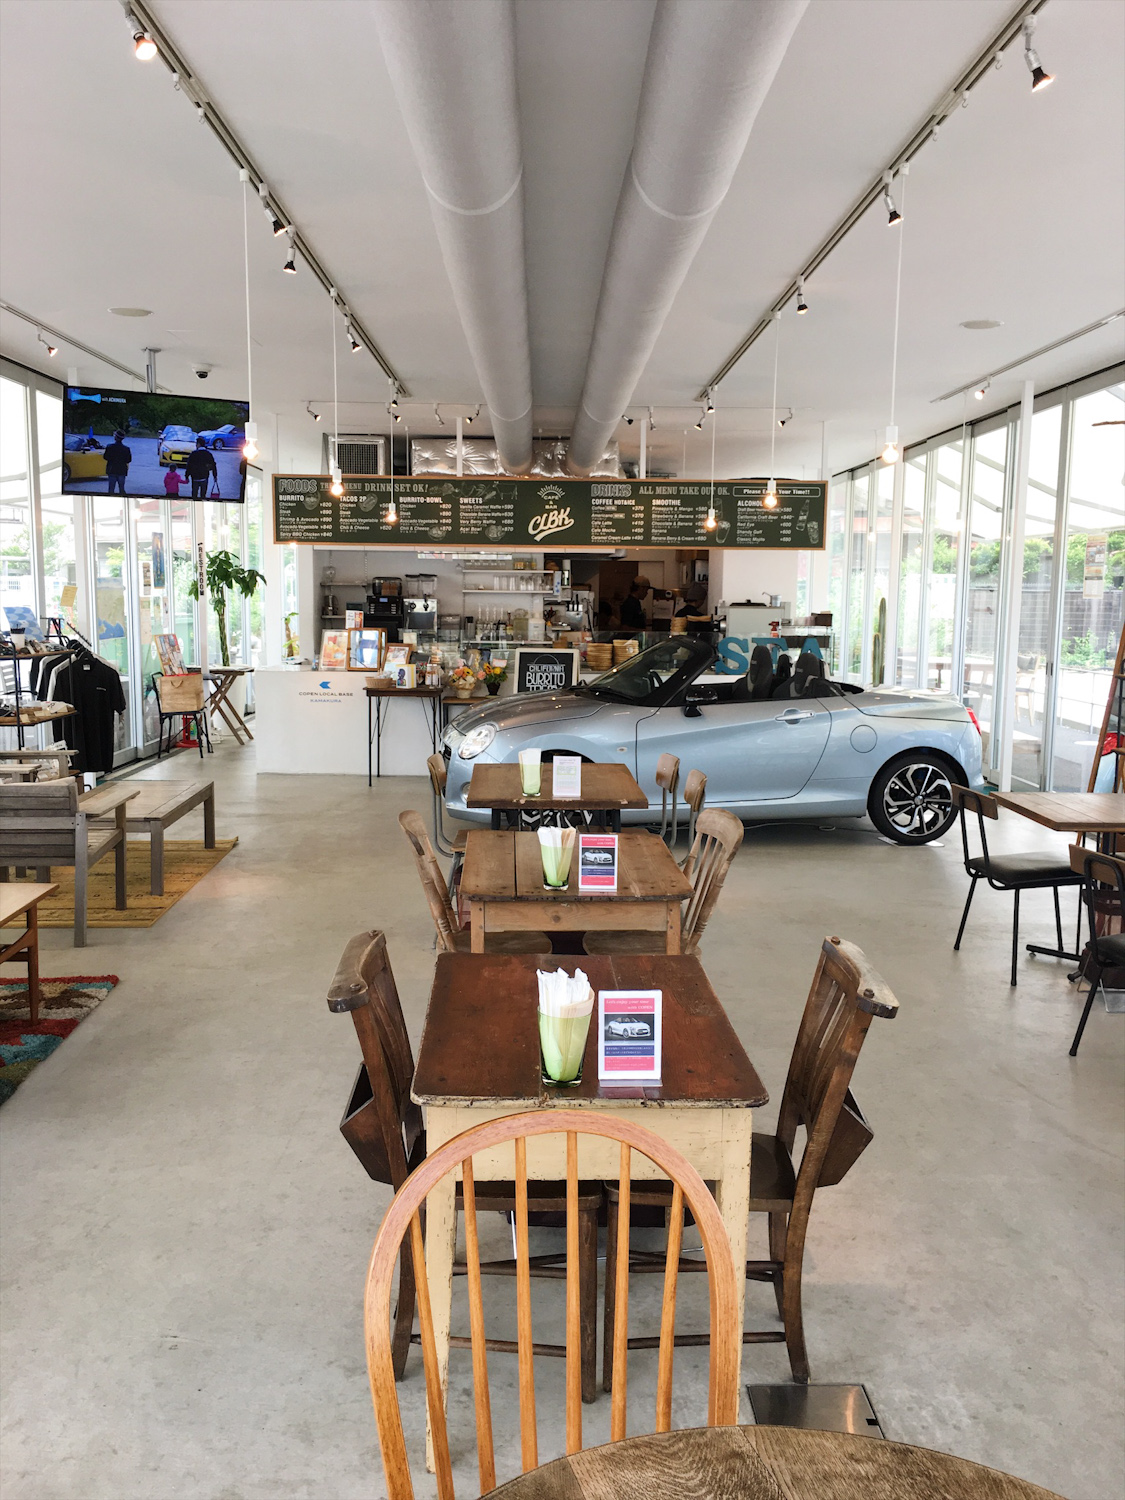 Copen Local Base Kamakura Lifestyle Cafe